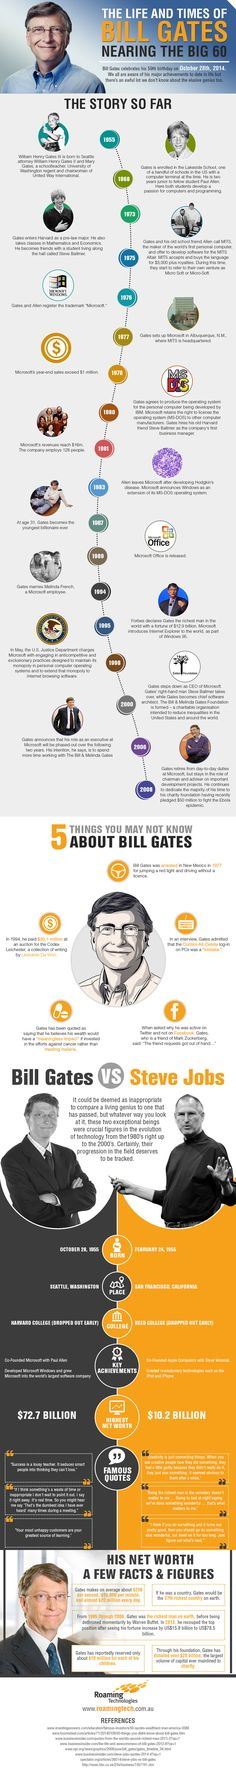 The Life and Times of Bill Gates Nearing the Big 60 #infographic #BillGates…